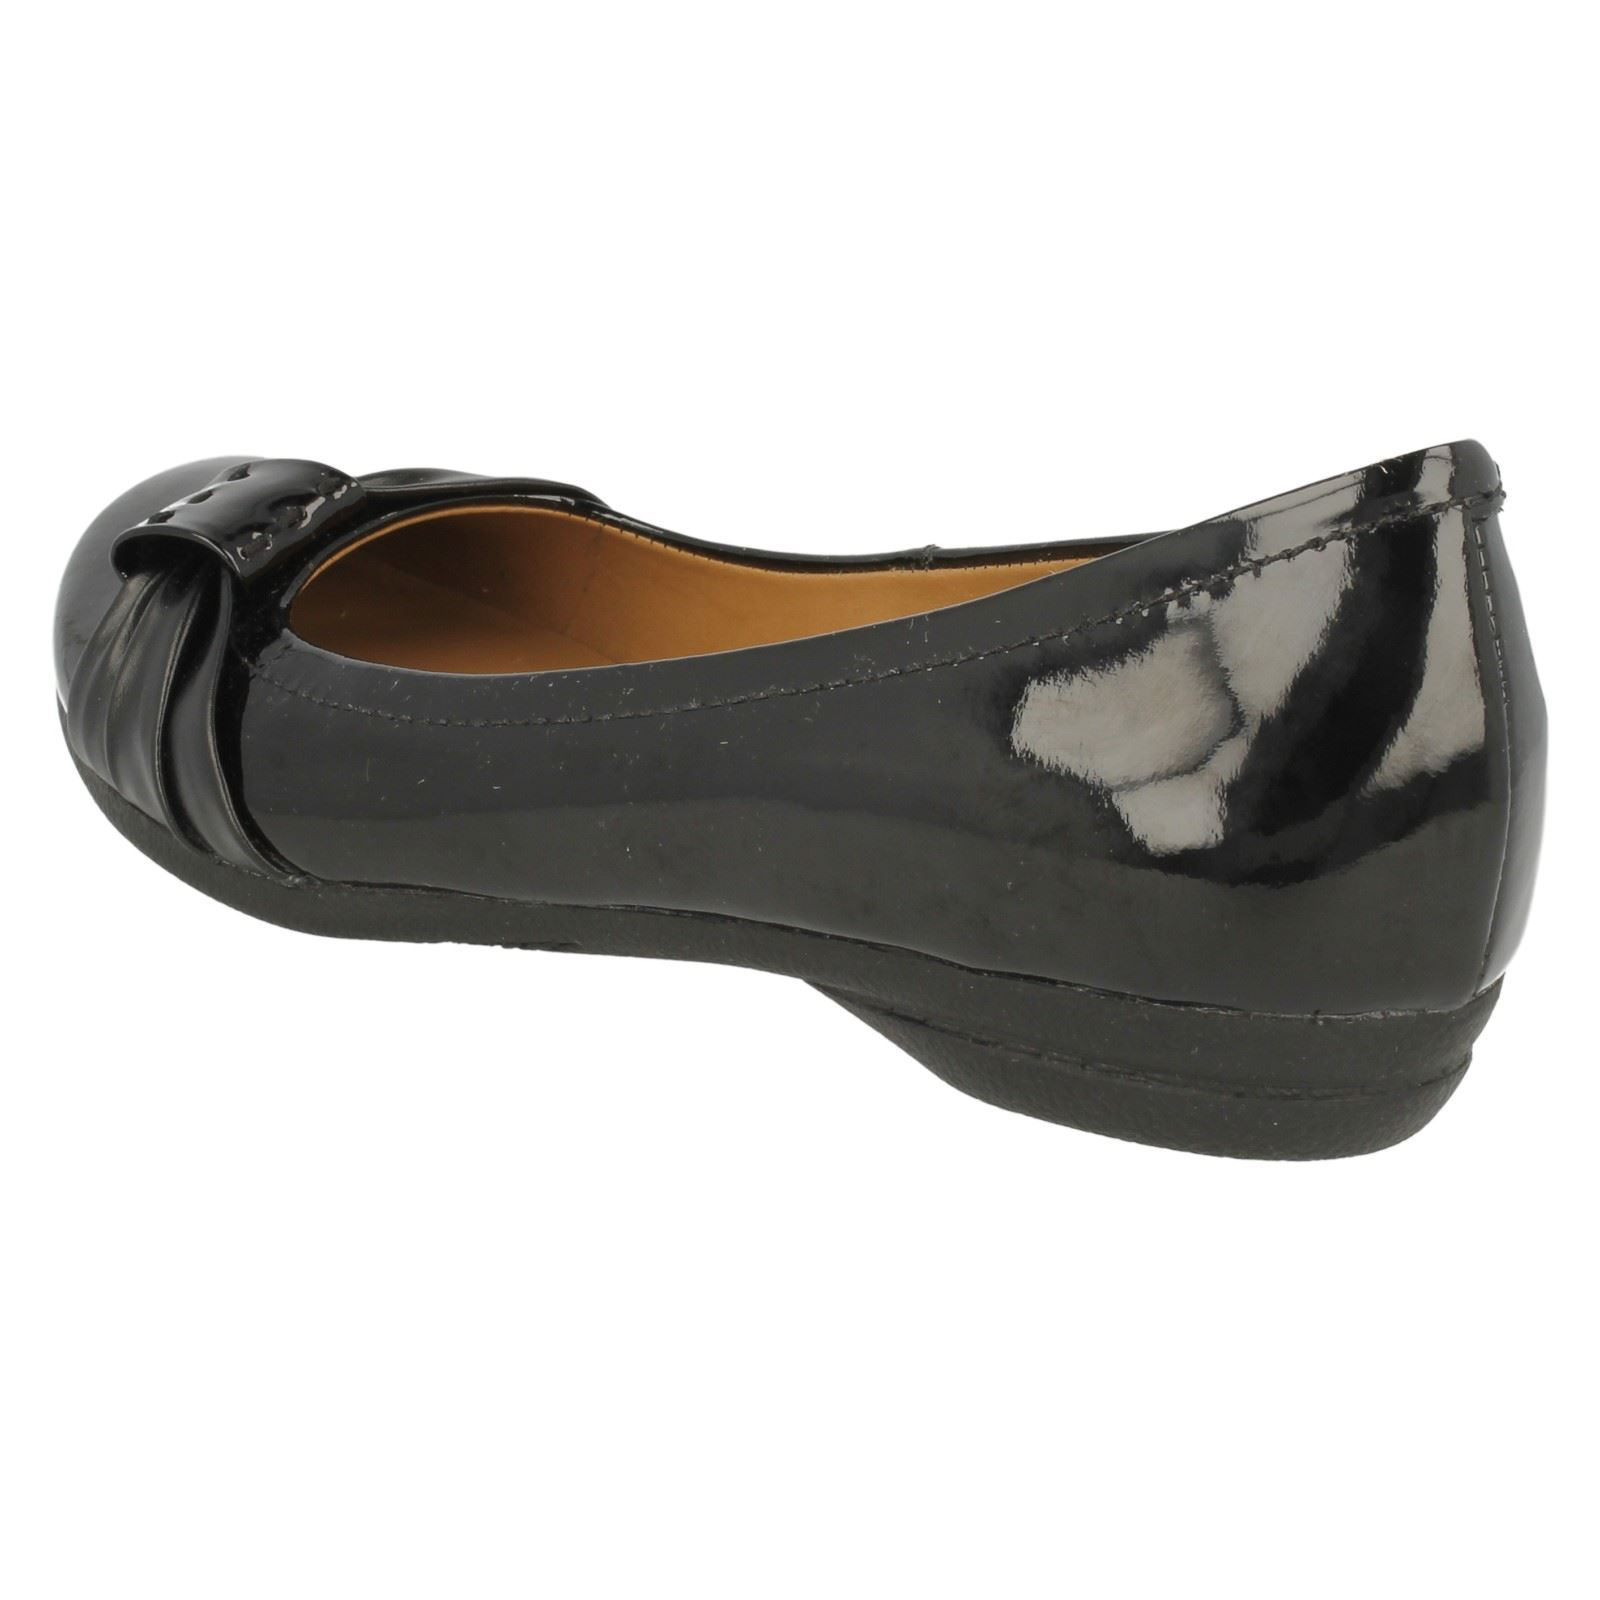 Clarks Ladies Flat Shoes - Discovery Bay | EBay